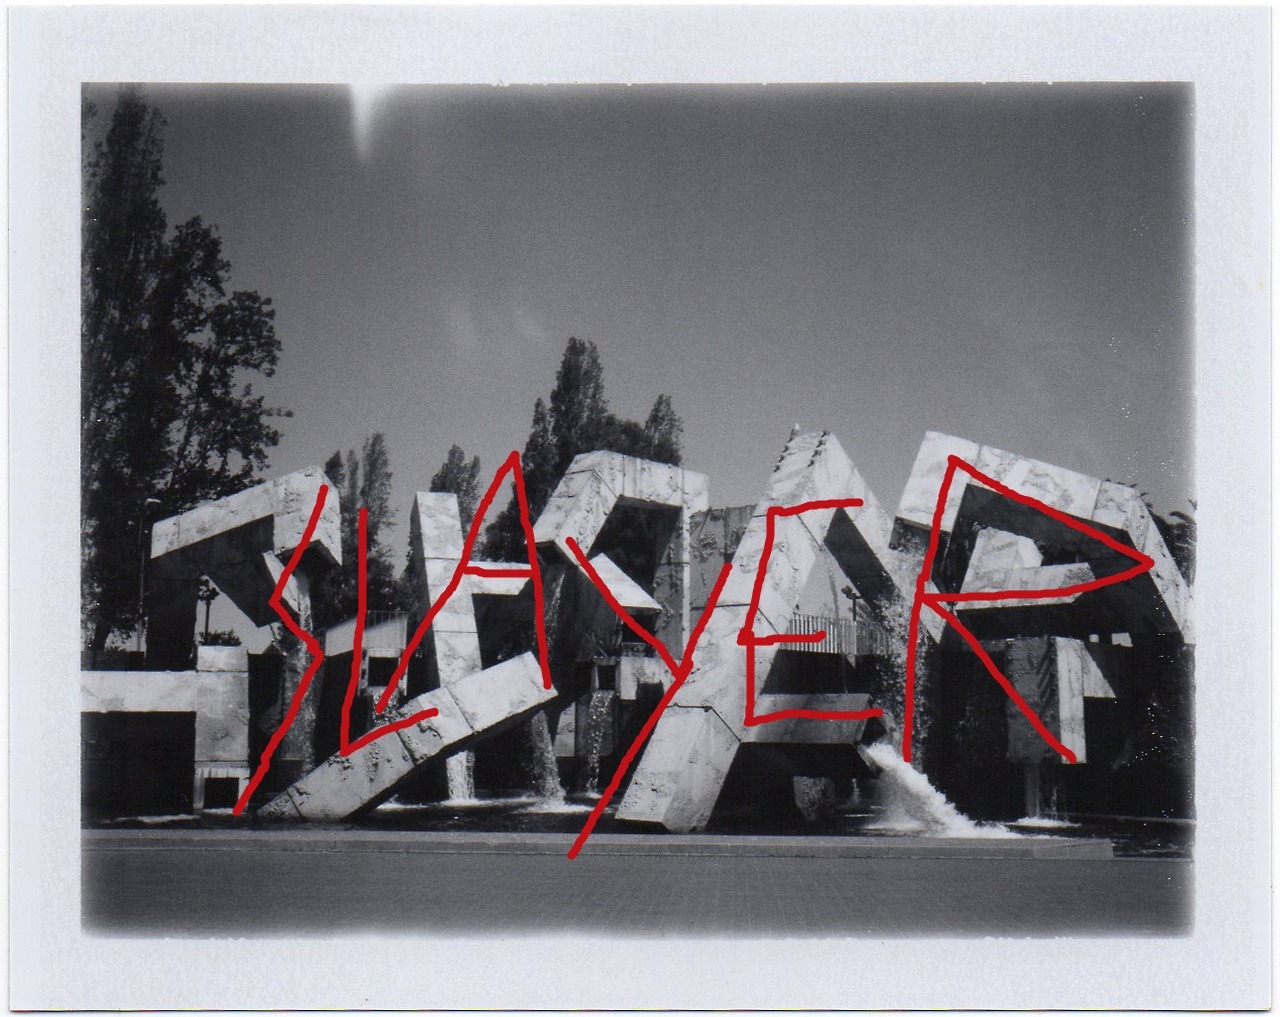 I've solved that fountain. Pre-Defaced Photo via polaroidsf